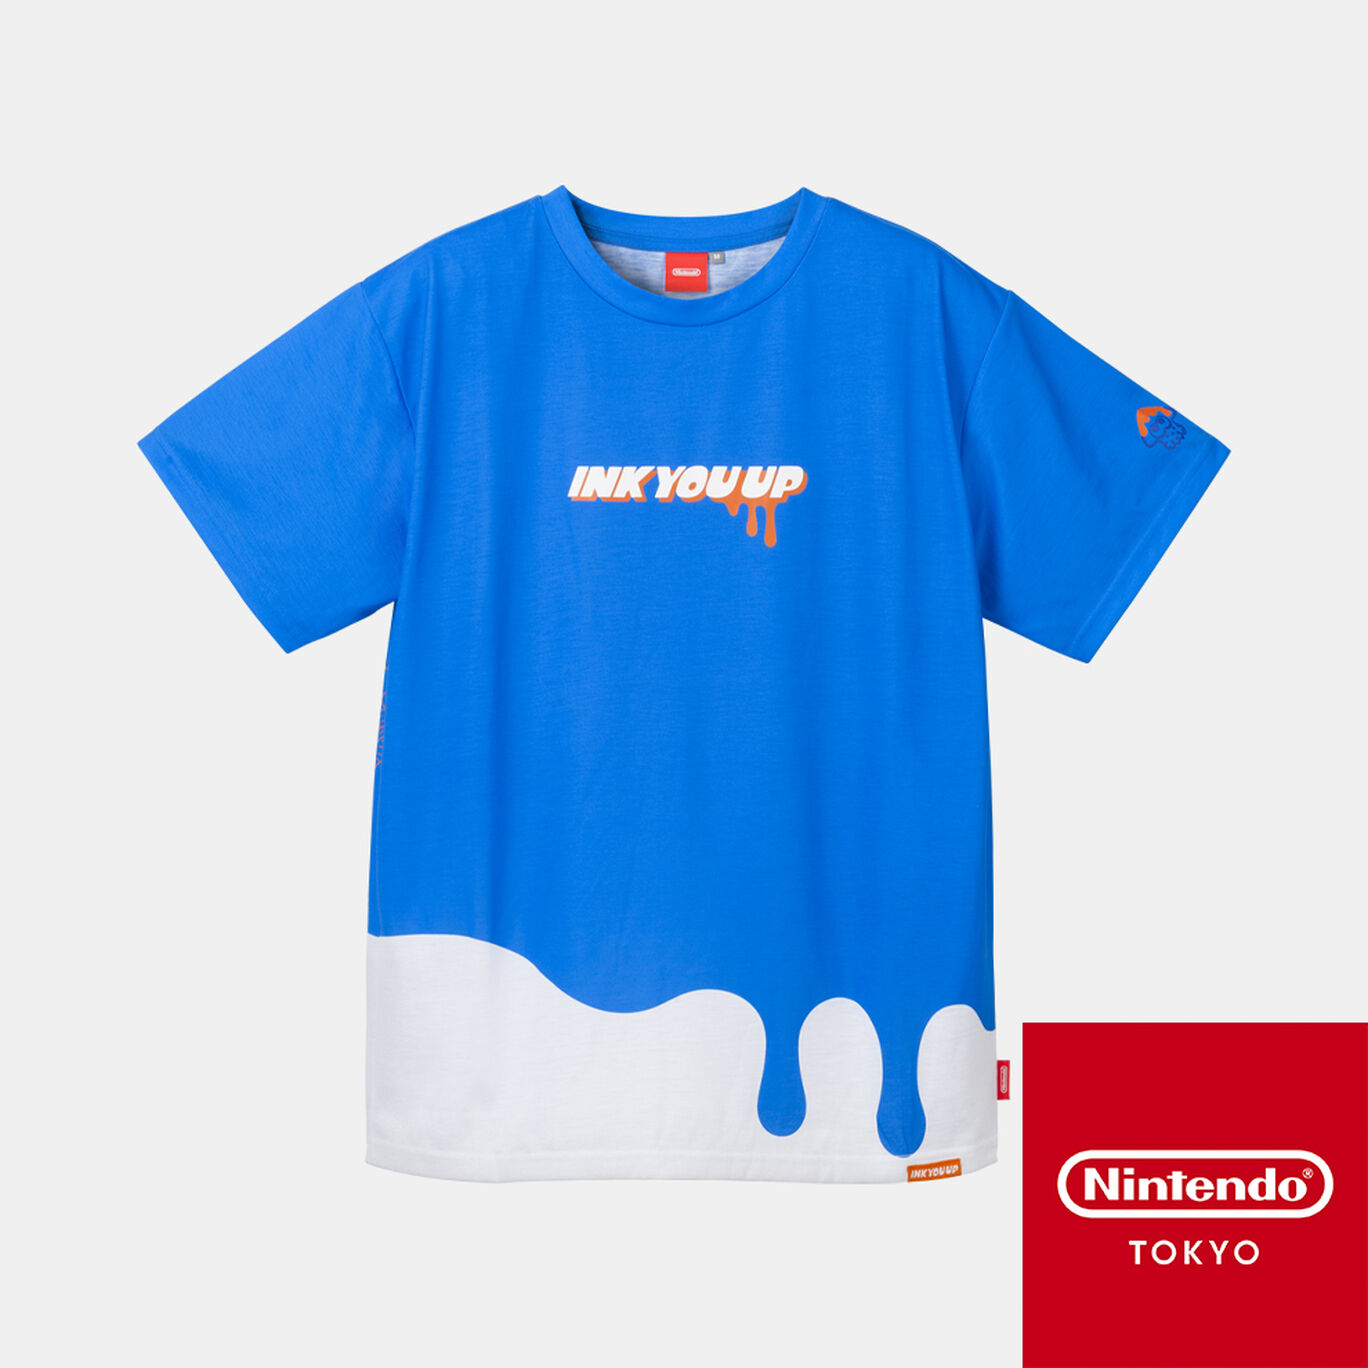 Tシャツ A S INK YOU UP【Nintendo TOKYO取り扱い商品】